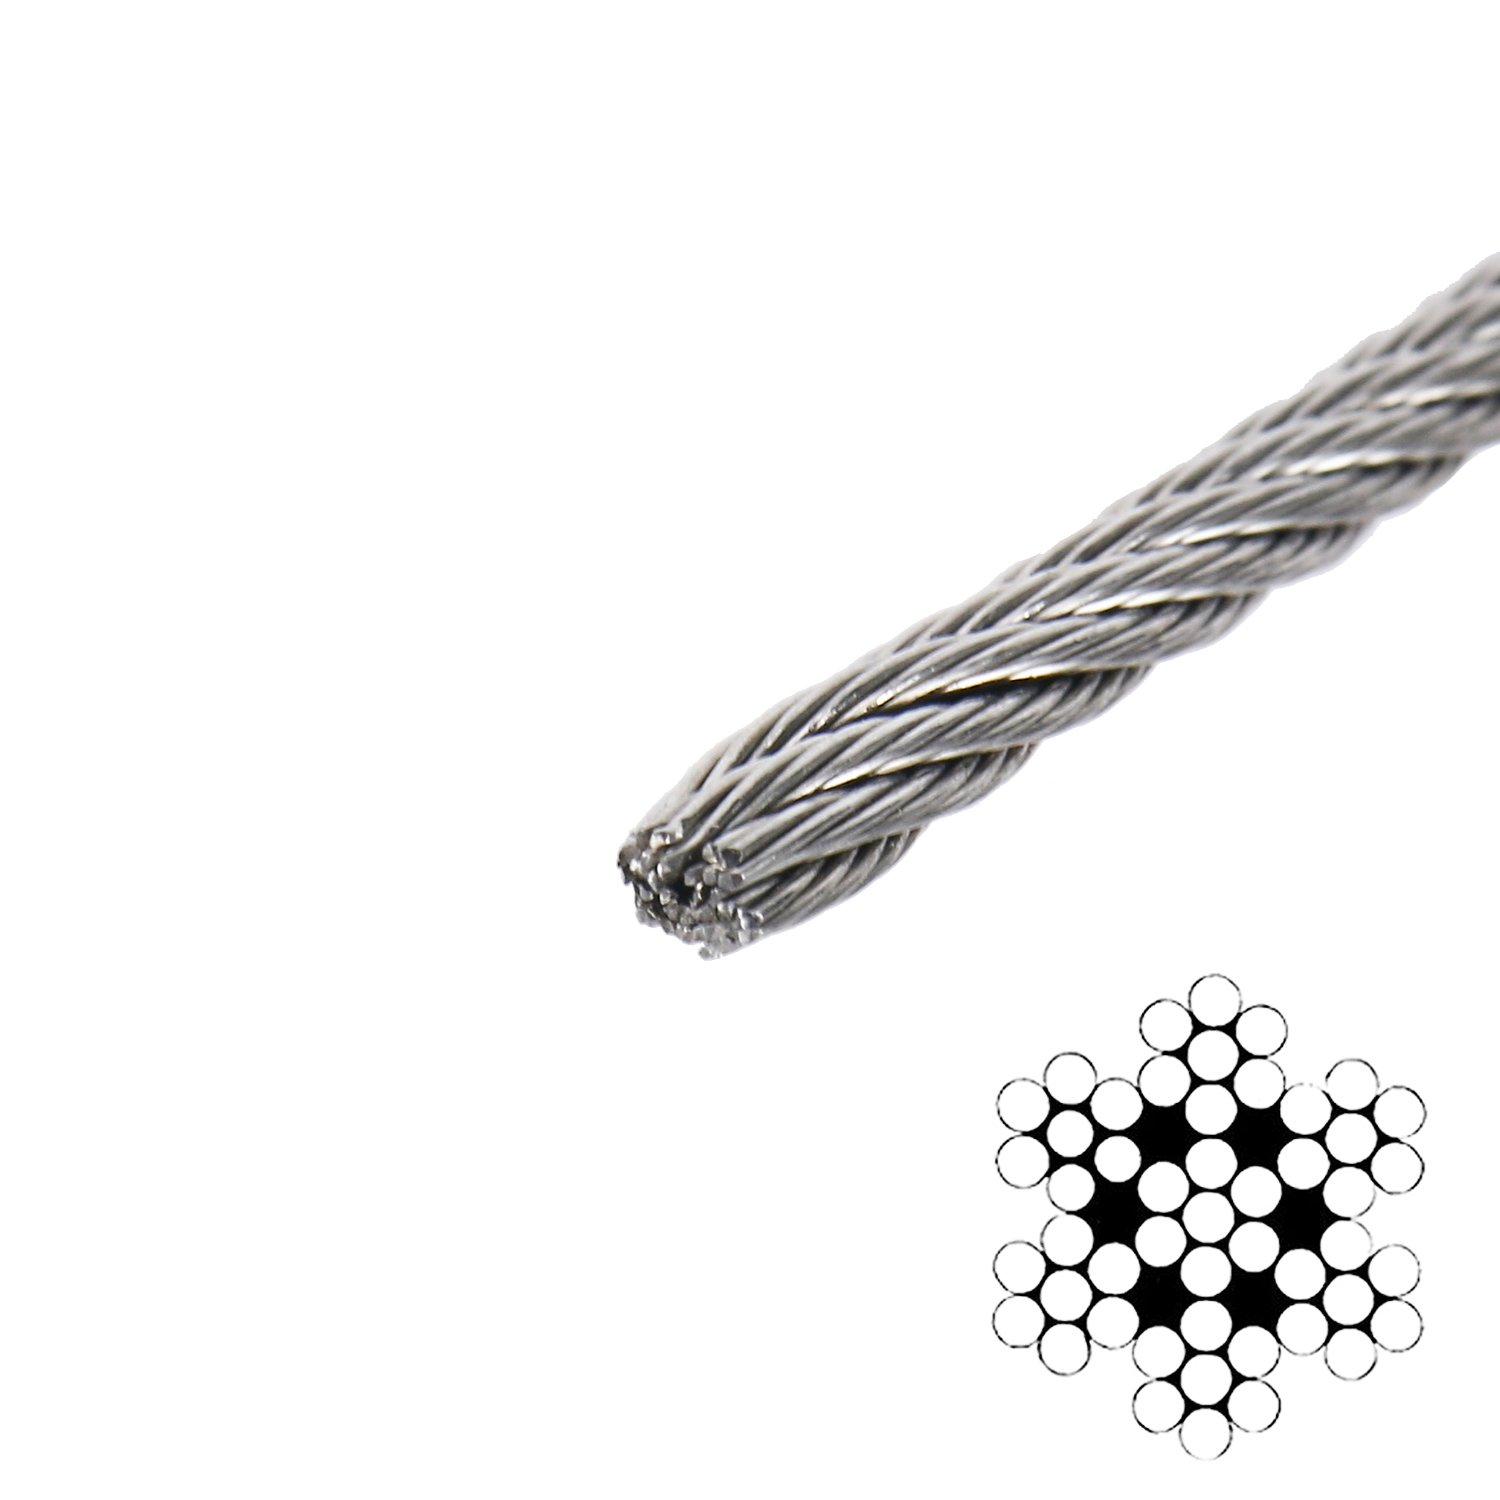 DasMarine Stainless Aircraft Steel Wire Rope Cable for Railing,Decking, DIY Balustrade, 1/8Inch,7x7,164Feet by DasMarine (Image #3)